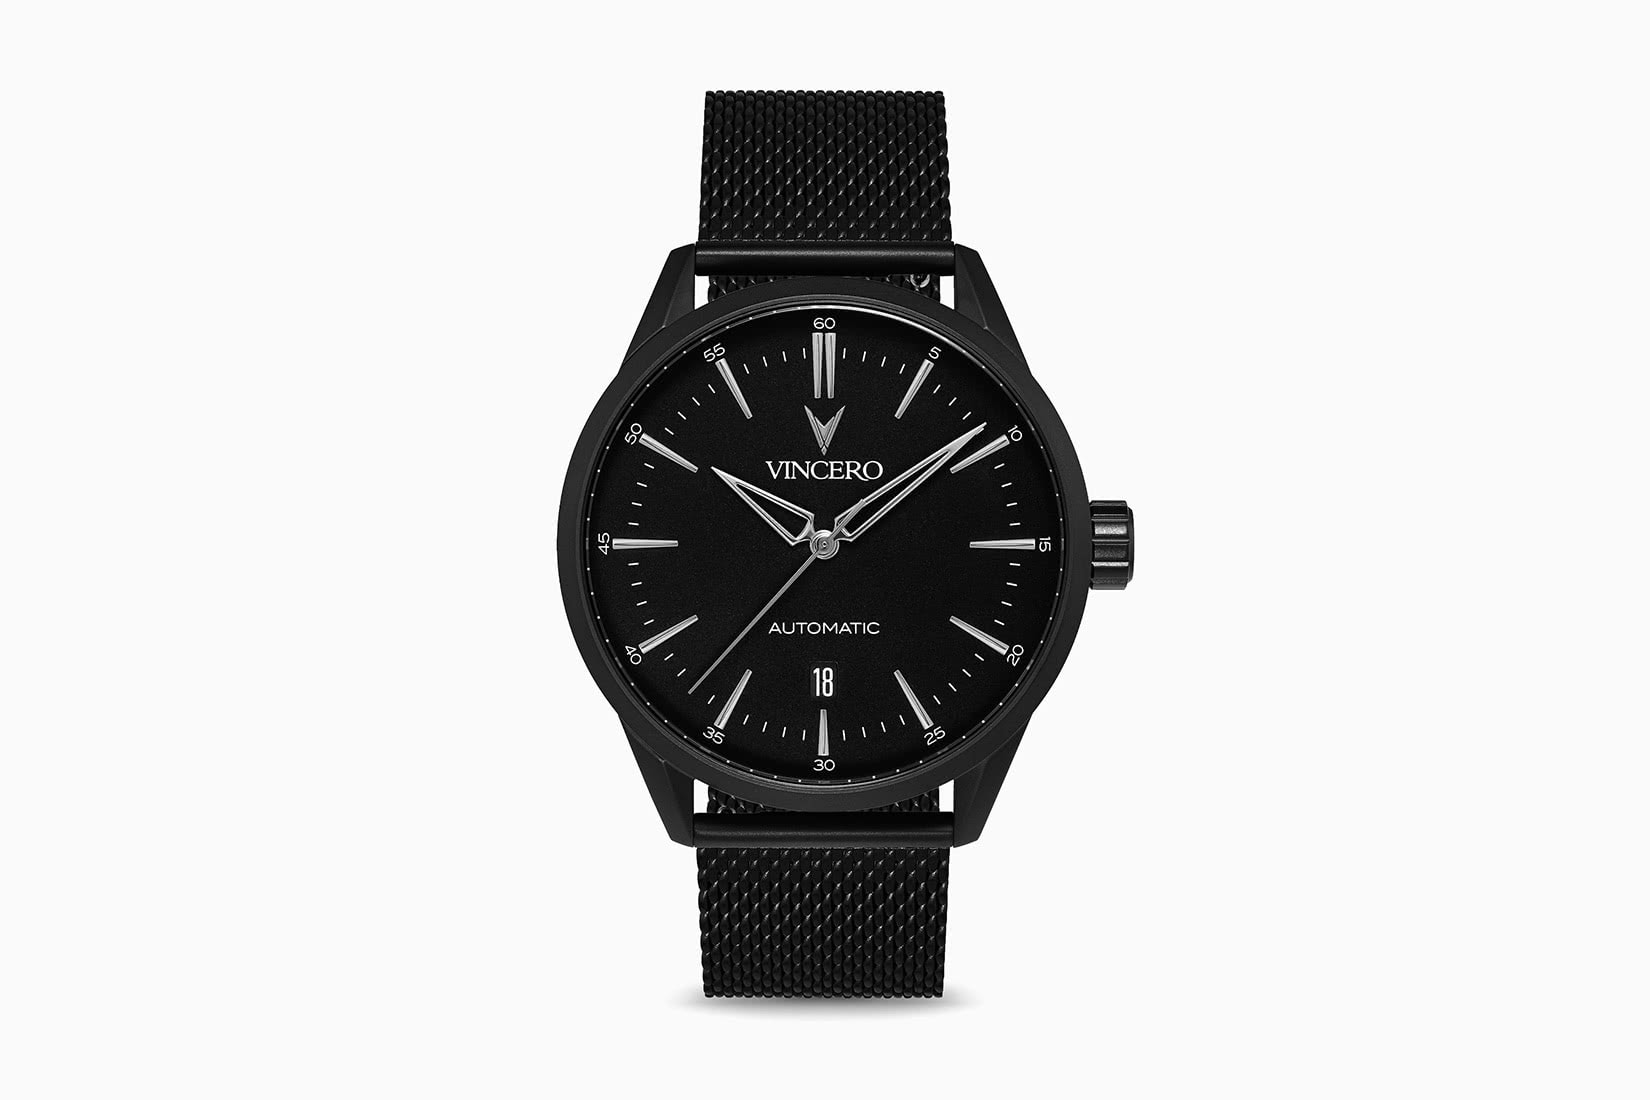 Vincero icon watches review - Luxe Digital